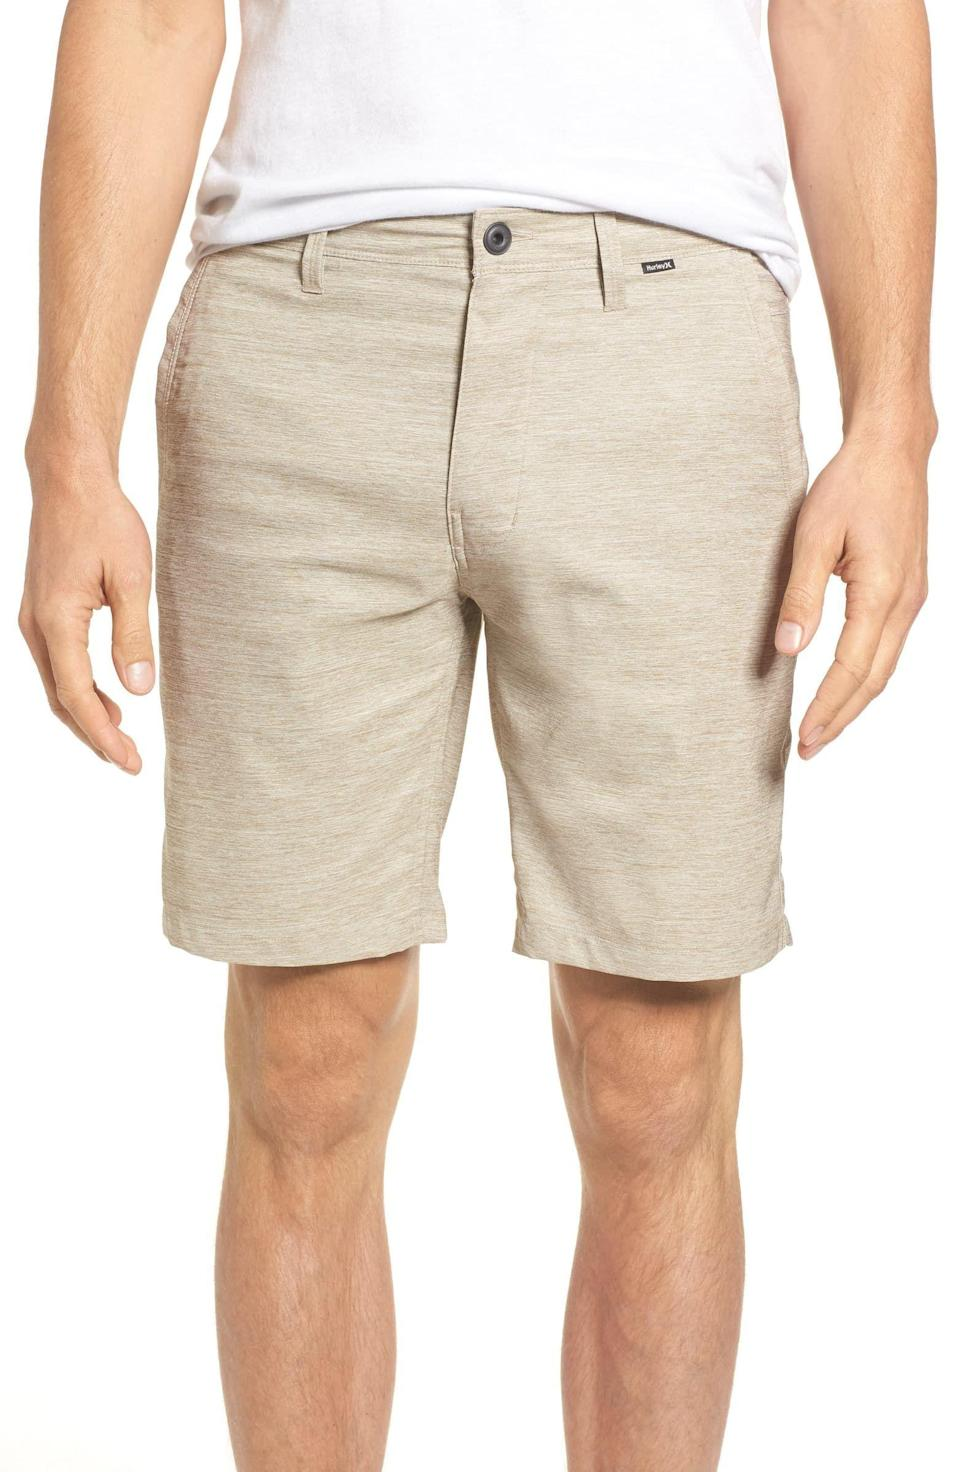 """<p><strong>HURLEY</strong></p><p>nordstrom.com</p><p><strong>$60.00</strong></p><p><a href=""""https://go.redirectingat.com?id=74968X1596630&url=https%3A%2F%2Fshop.nordstrom.com%2Fs%2Fhurley-dri-fit-shorts%2F4736932&sref=https%3A%2F%2Fwww.goodhousekeeping.com%2Fholidays%2Fgift-ideas%2Fg20685099%2Fgolf-gifts%2F"""" rel=""""nofollow noopener"""" target=""""_blank"""" data-ylk=""""slk:Shop Now"""" class=""""link rapid-noclick-resp"""">Shop Now</a></p><p>It gets hot on the golf course, but these classic-style trousers are moisture wicking and stretchy, keeping him cool while he plays.</p>"""